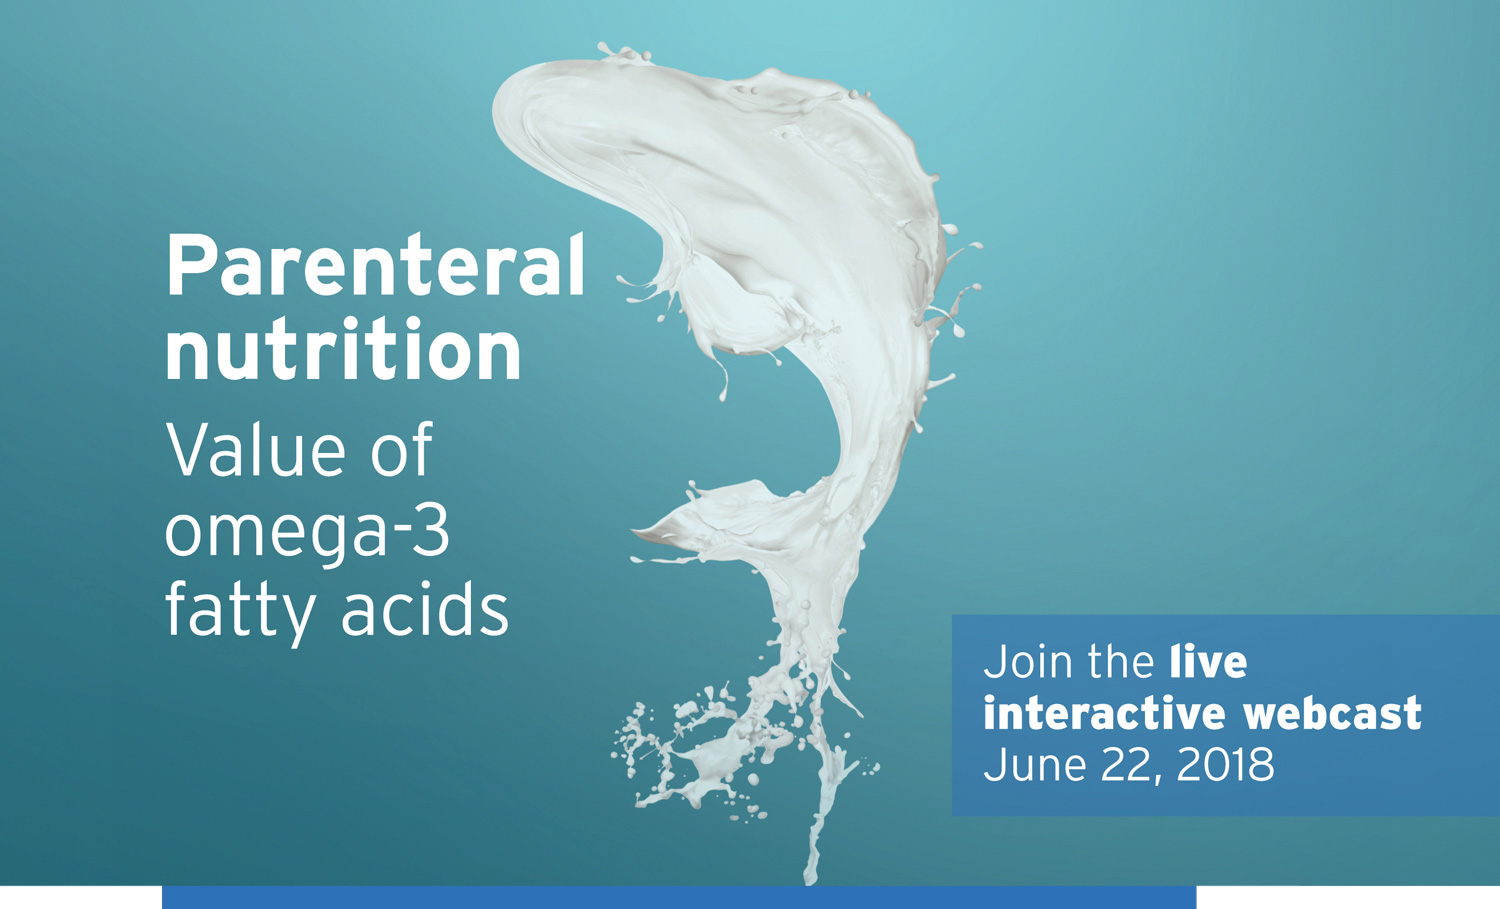 Parenteral nutrition Value of omega-3 fatty acids